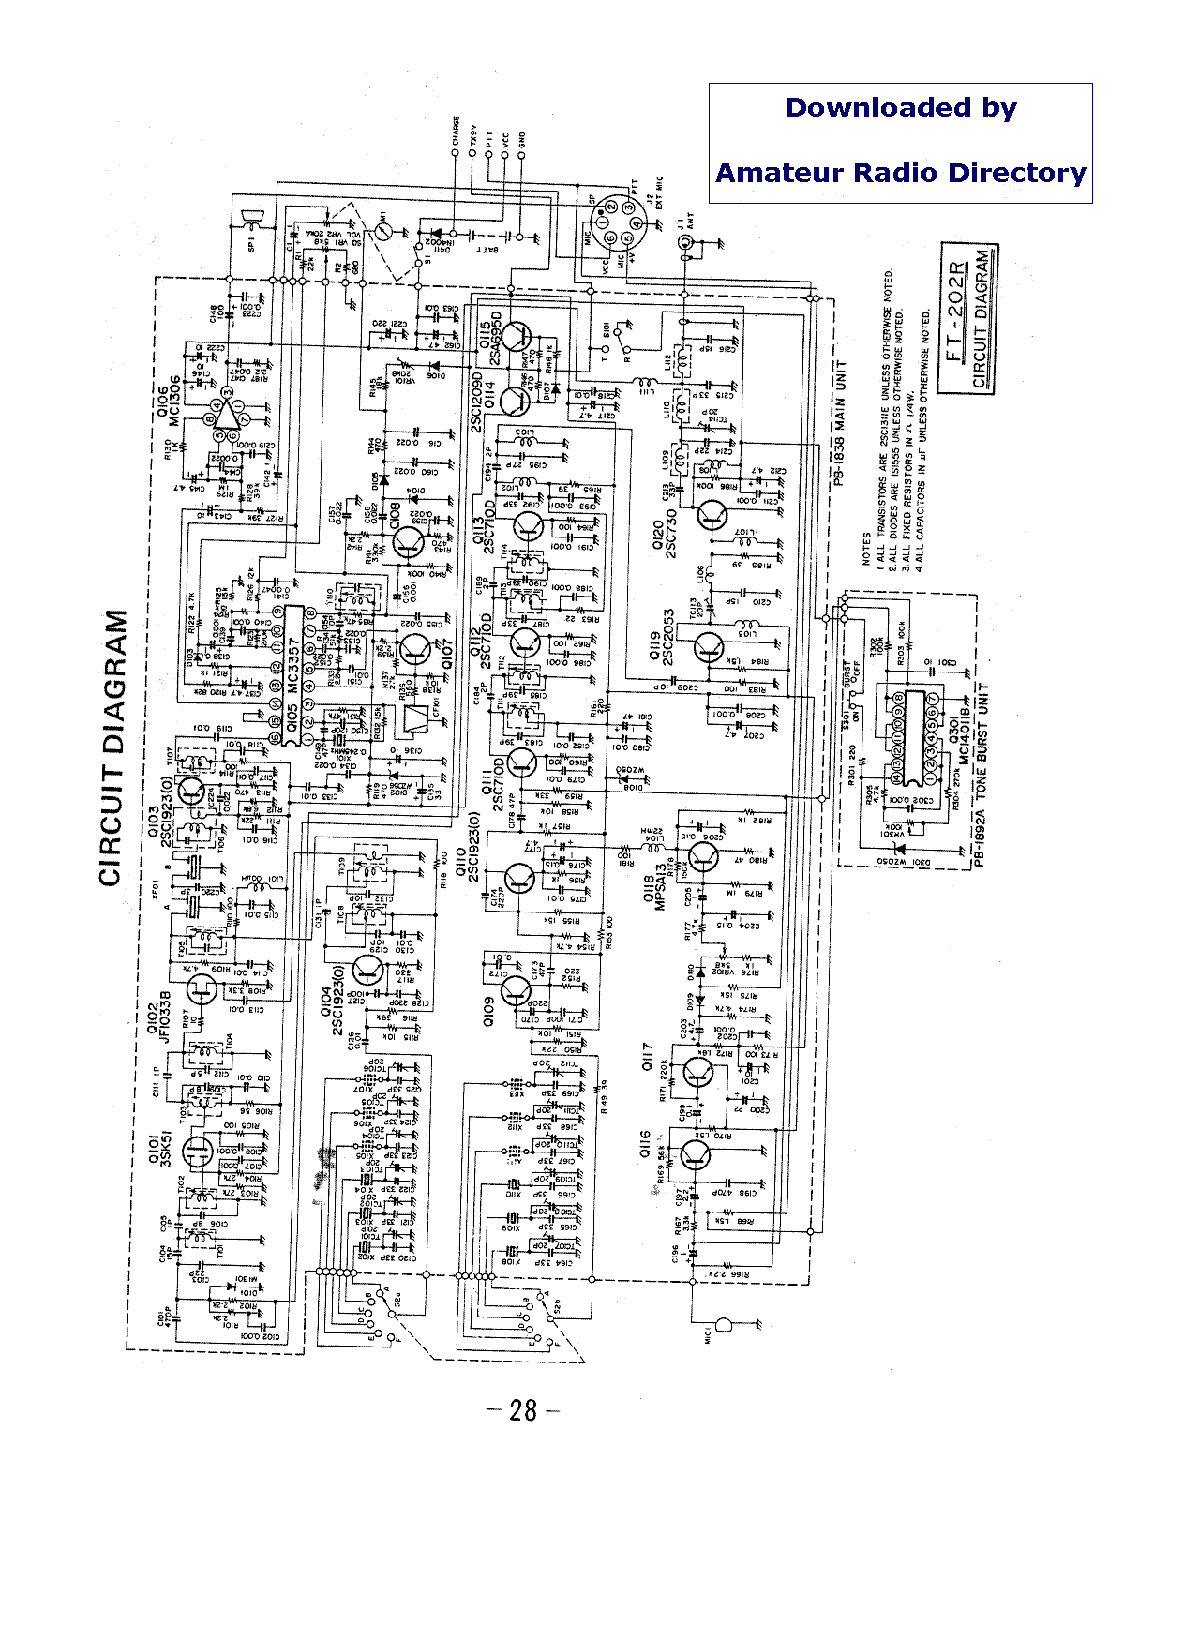 YAESU FT-212RH Service Manual download, schematics, eeprom